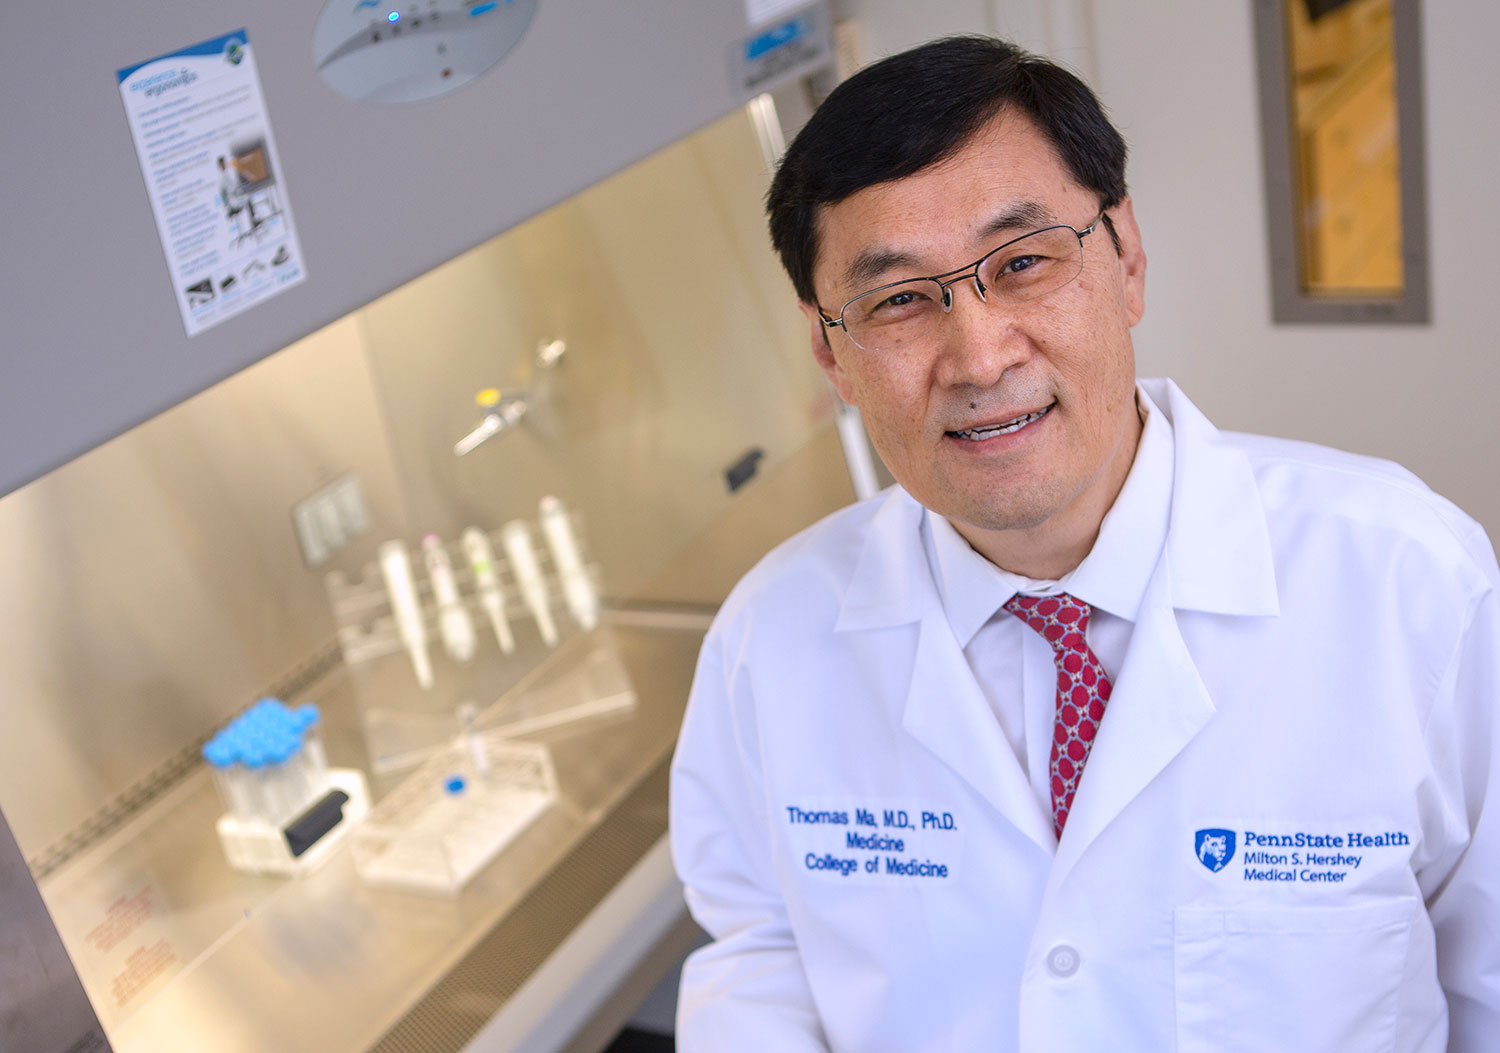 Dr. Thomas Ma aims to improve faculty work satisfaction and build a stronger research program at Penn State College of Medicine. Ma is pictured standing in a laboratory, wearing a medical coat, with lab equipment visible in the background.